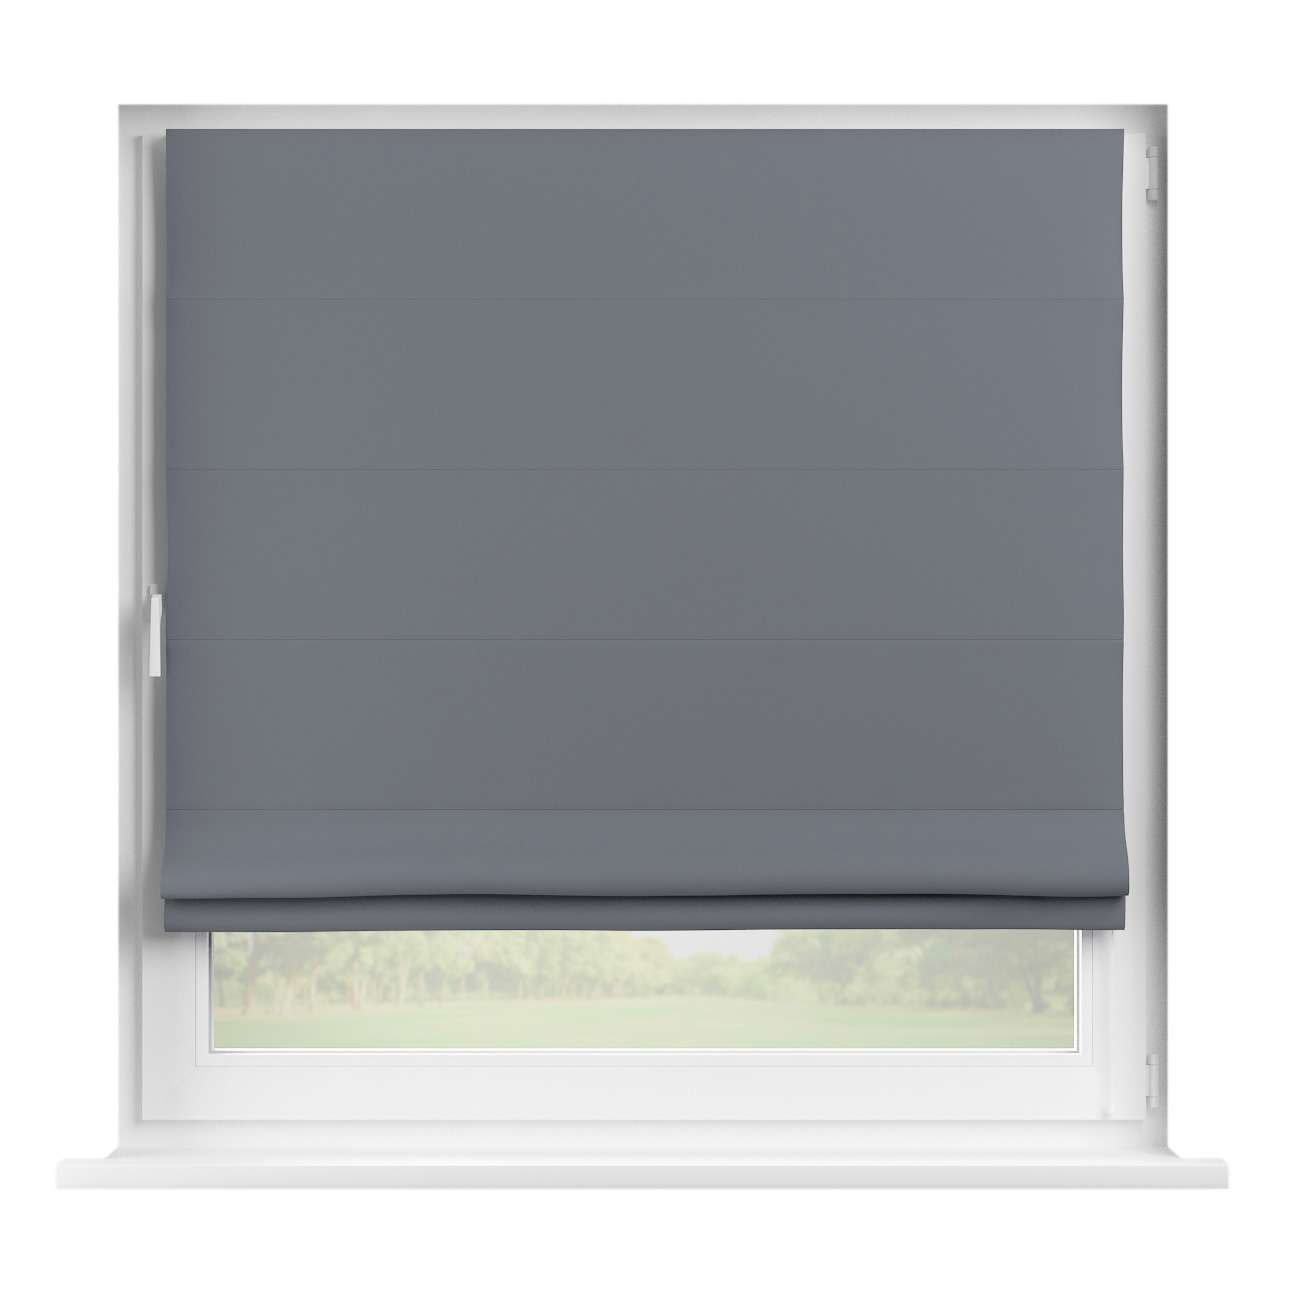 Blackout roman blind 80 x 170 cm (31,5 x 67 inch) in collection Blackout, fabric: 269-76